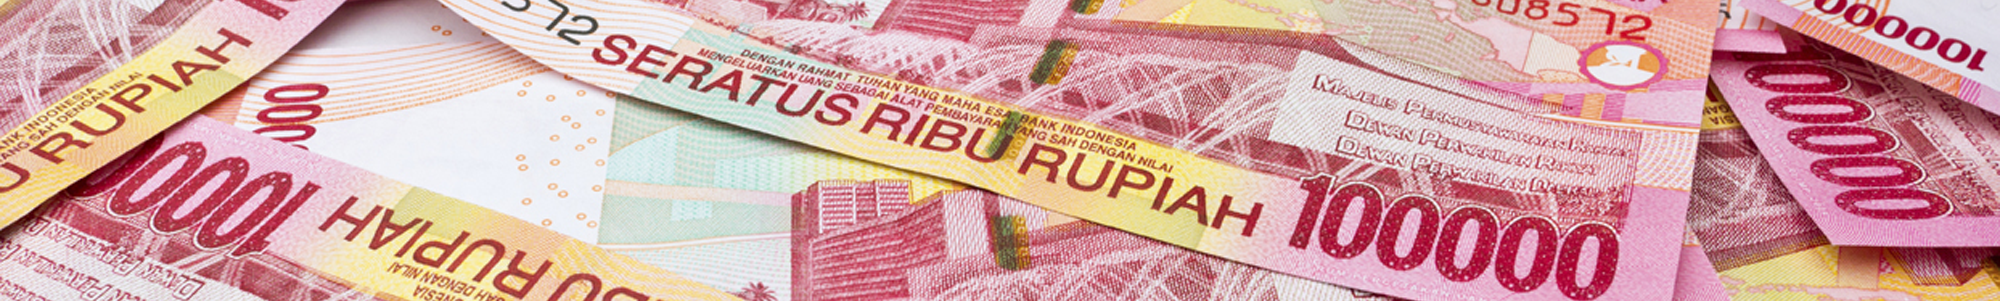 Indonesian-Rupiah-Paper-Currency